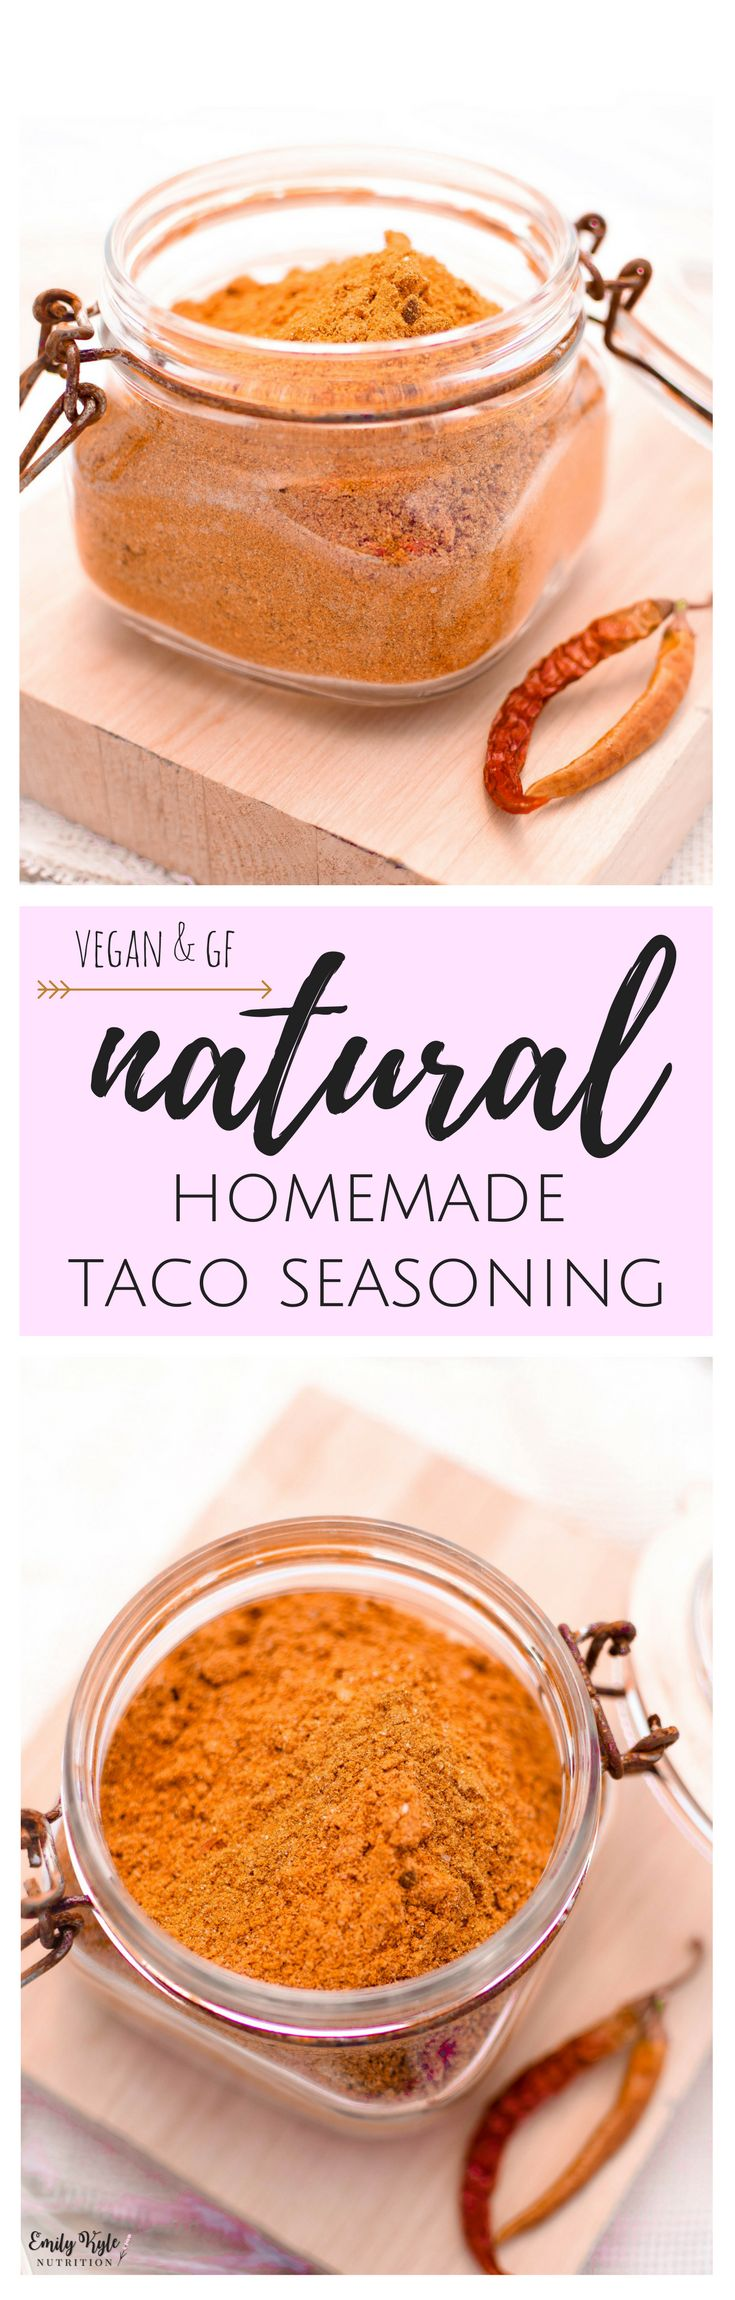 Skip the artificial, prepackaged taco seasoning and spice up your taco night with this healthier All Natural Gluten Free Homemade Taco Seasoning! via @EmKyleNutrition